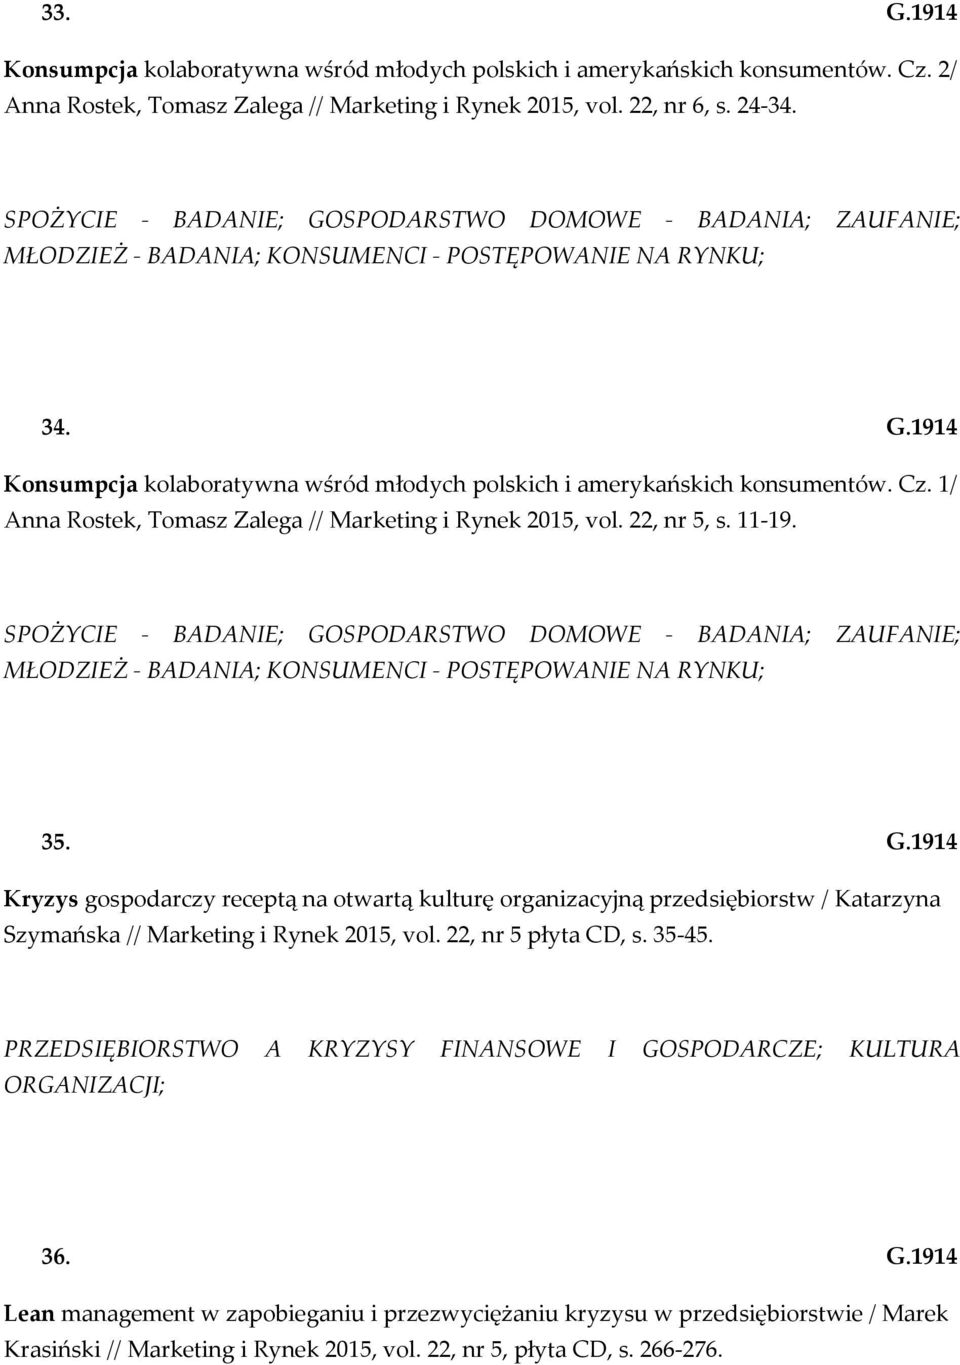 Cz. 1/ Anna Rostek, Tomasz Zalega // Marketing i Rynek 2015, vol. 22, nr 5, s. 11-19.